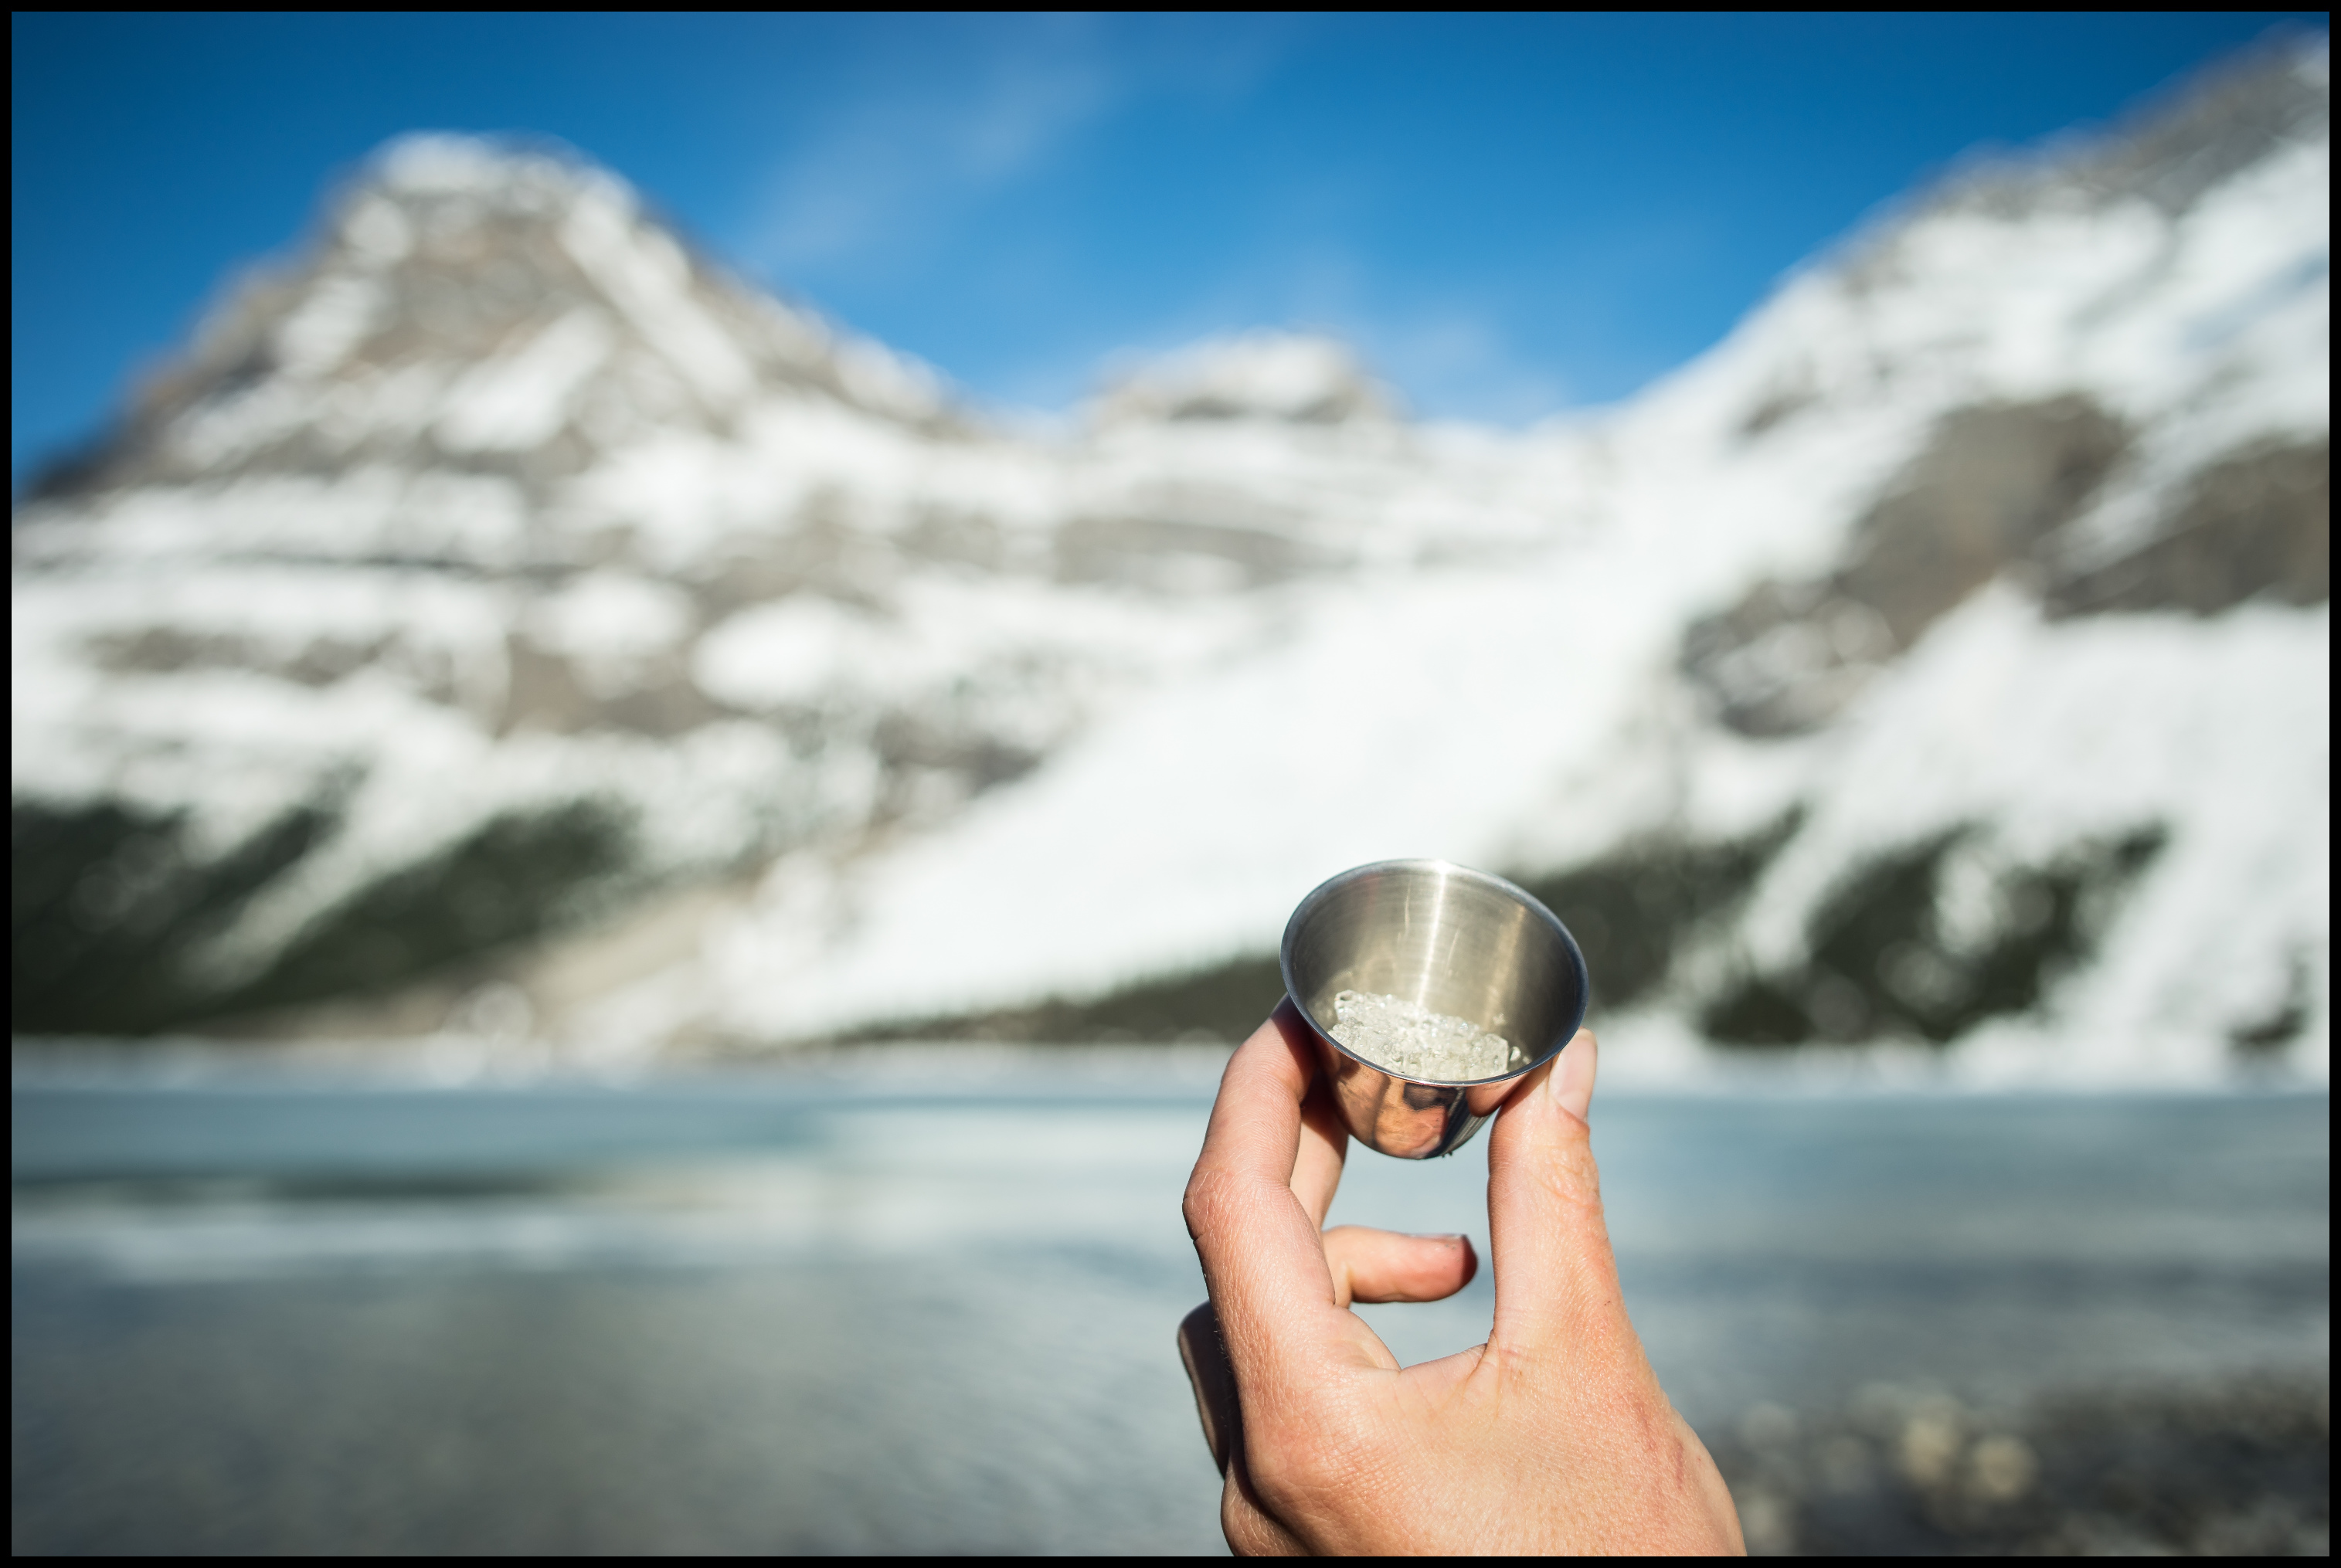 Doesn't taste right without glacier ice :) Berg Lake / Marmot campsite Sony A7 / Canon FD Tilt Shift 35 2.8